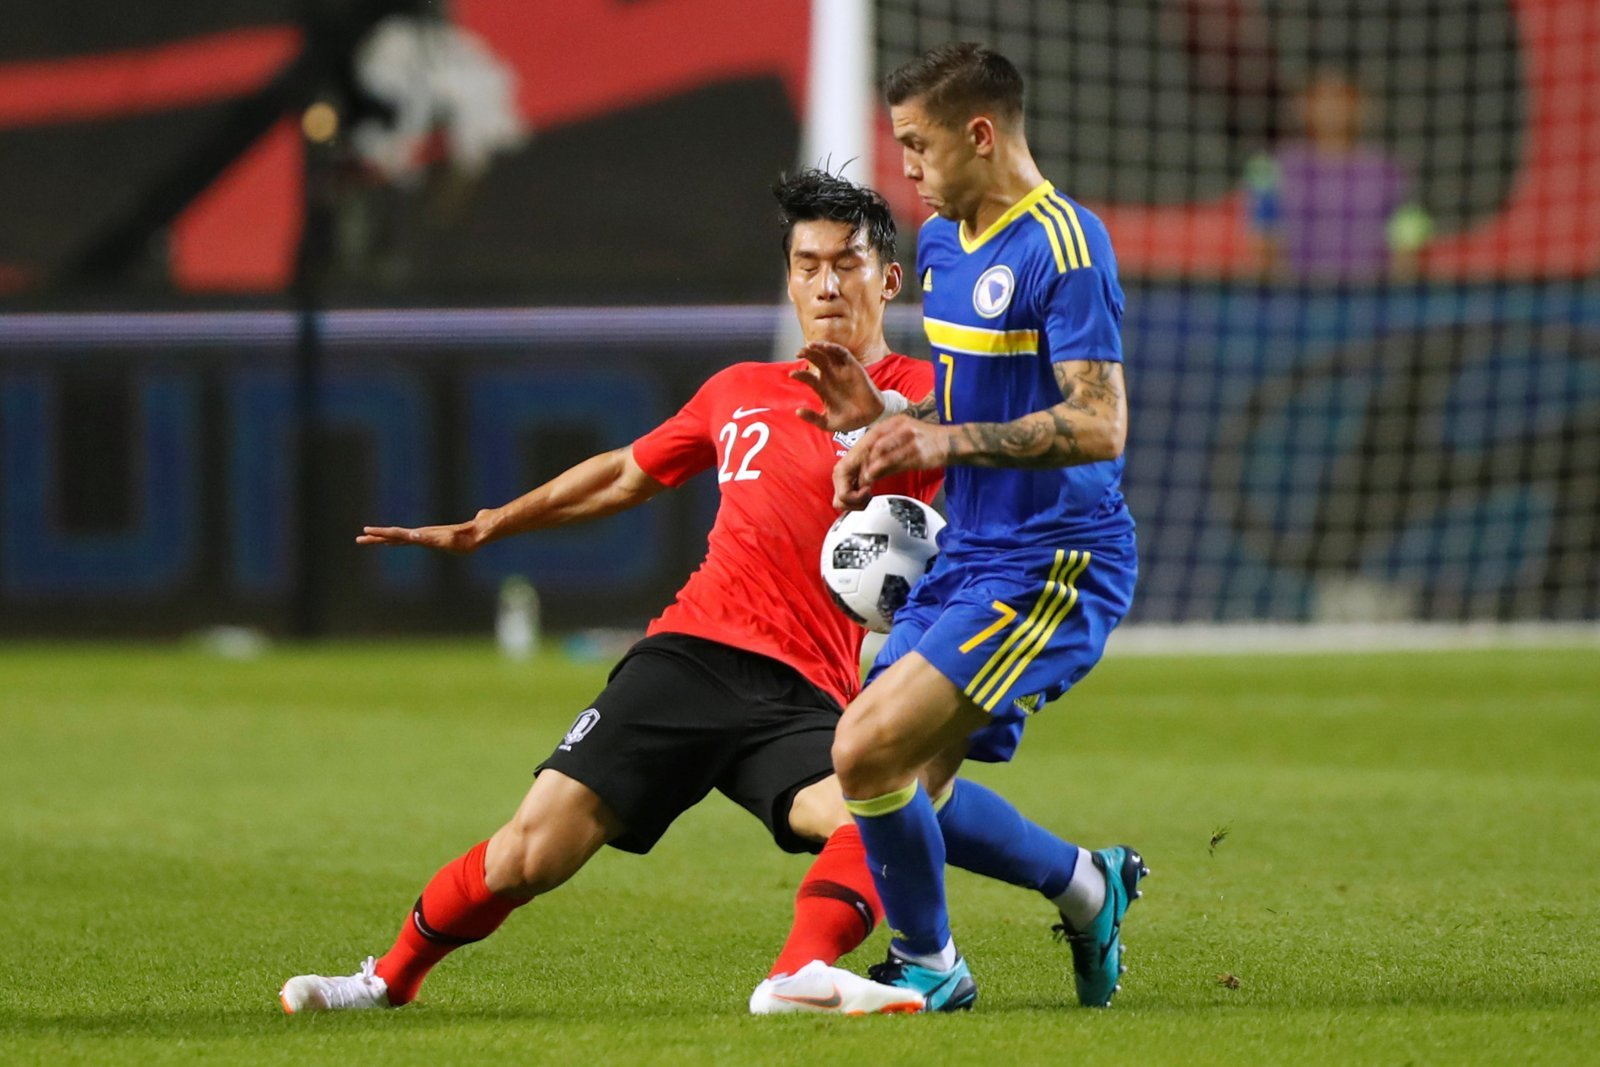 Everton keen to offload Mo Besic but wage demands a concern